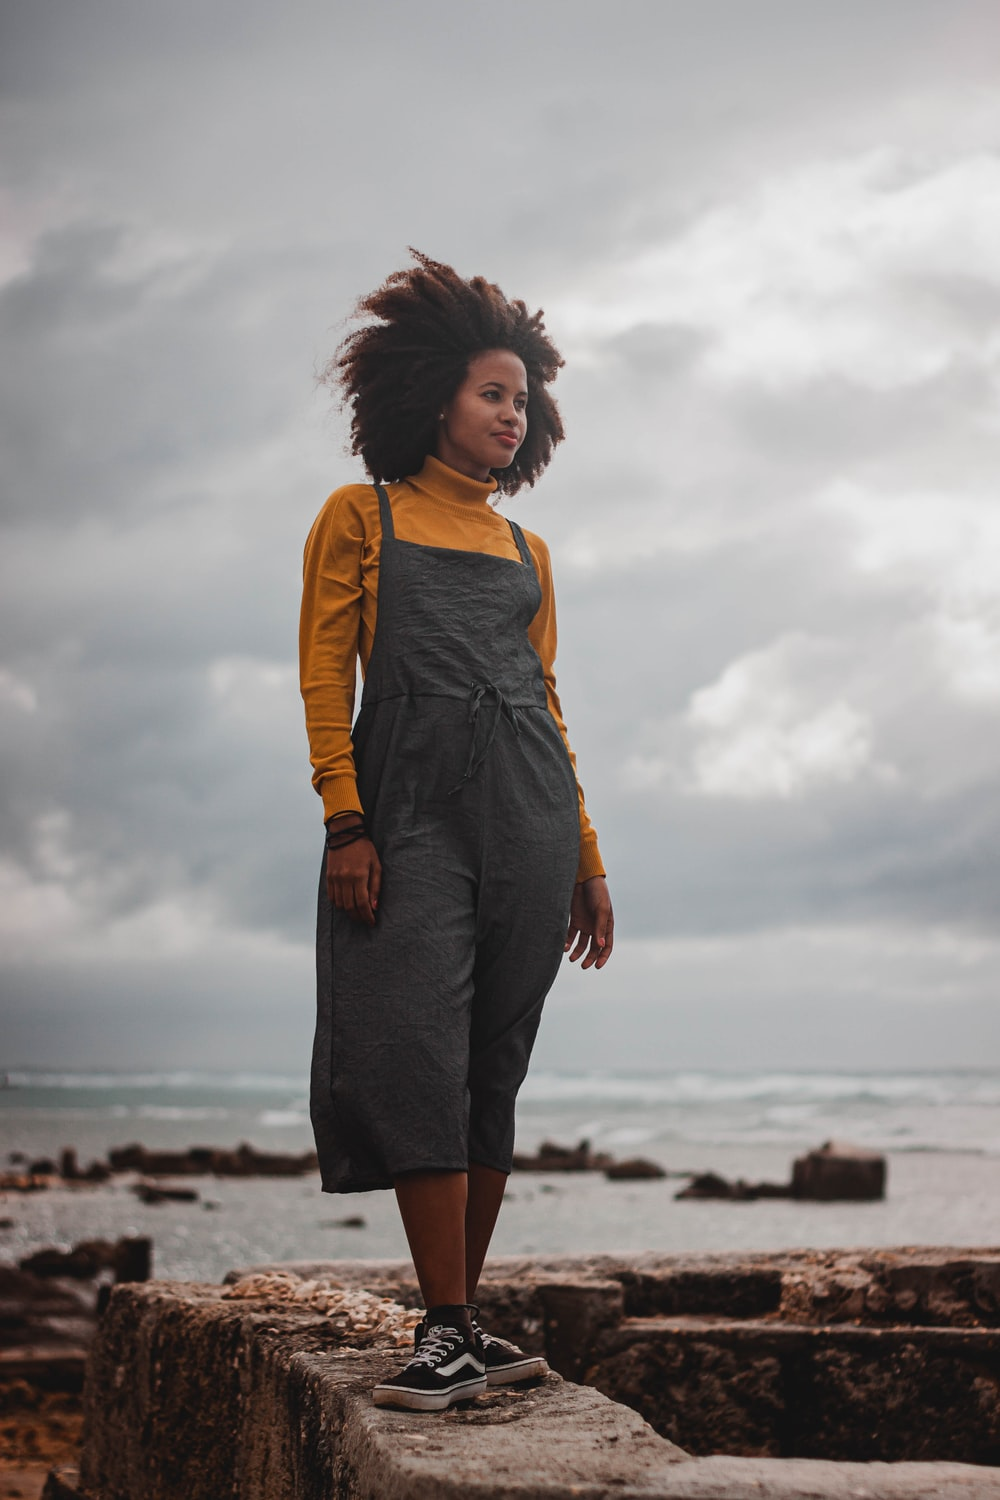 woman in yellow shirt and black skirt standing on beach during daytime